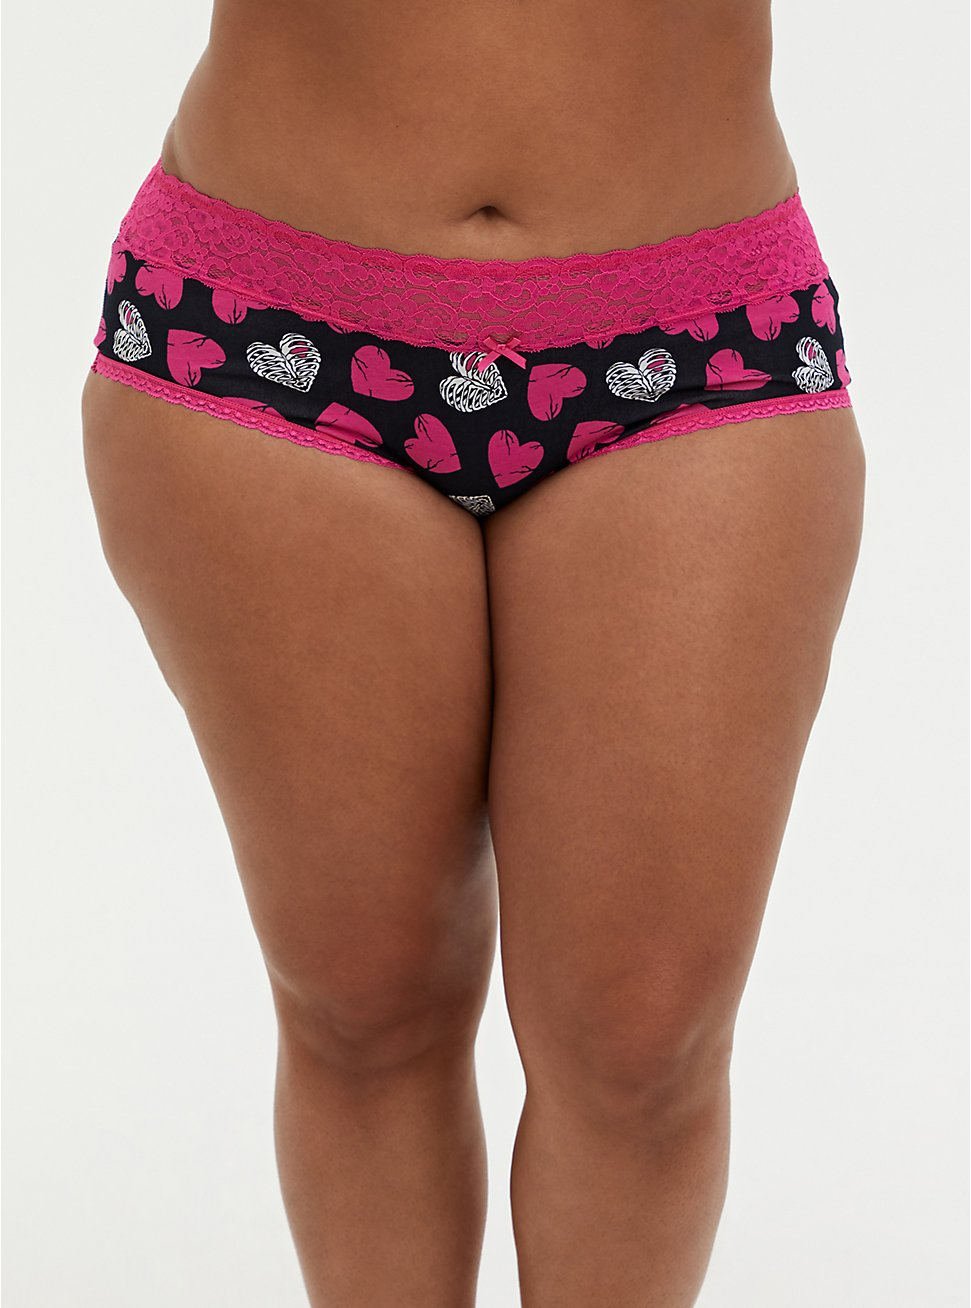 Black & Pink Rib Cage Hearts Wide Lace Cotton Cheeky Panty, , hi-res